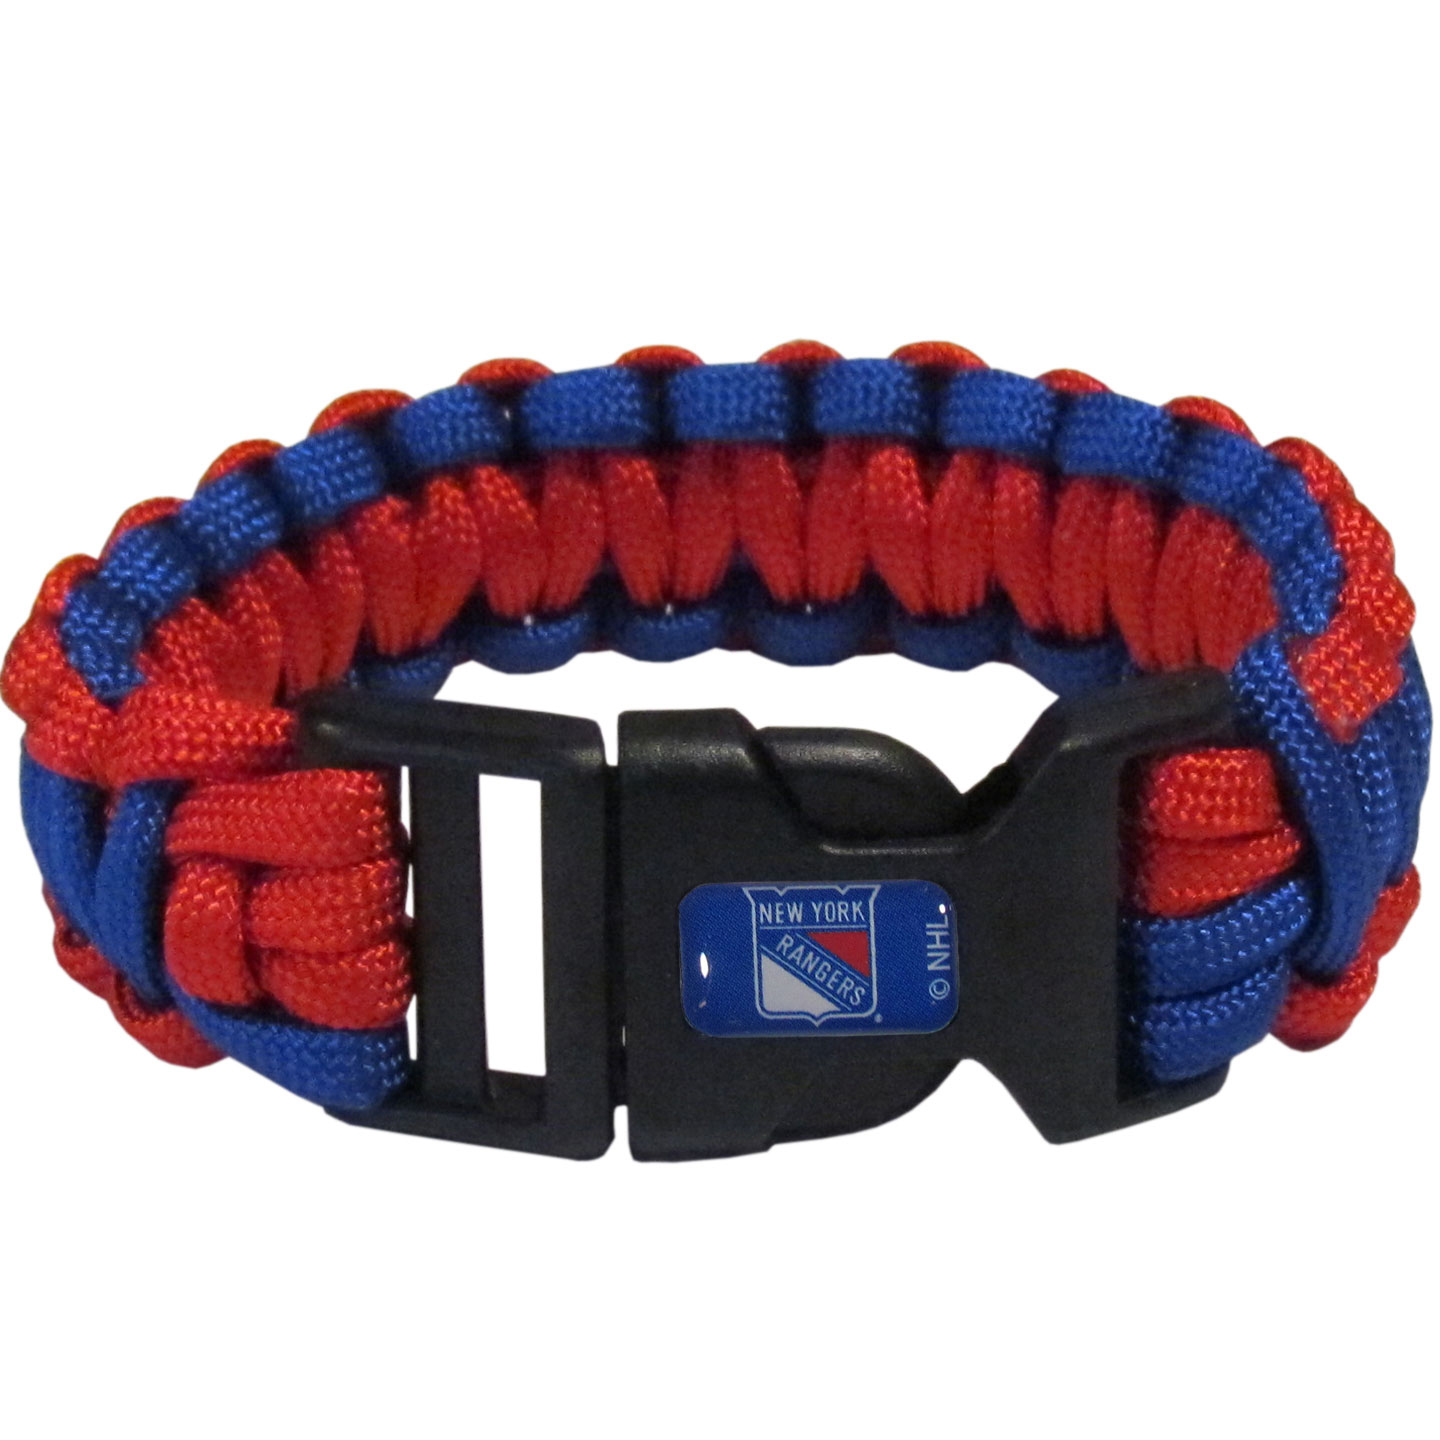 New York Rangers® Survivor Bracelet - Our functional and fashionable New York Rangers® survivor bracelets contain 2 individual 300lb test paracord rated cords that are each 5 feet long. The team colored cords can be pulled apart to be used in any number of emergencies and look great while worn. The bracelet features a team emblem on the clasp.